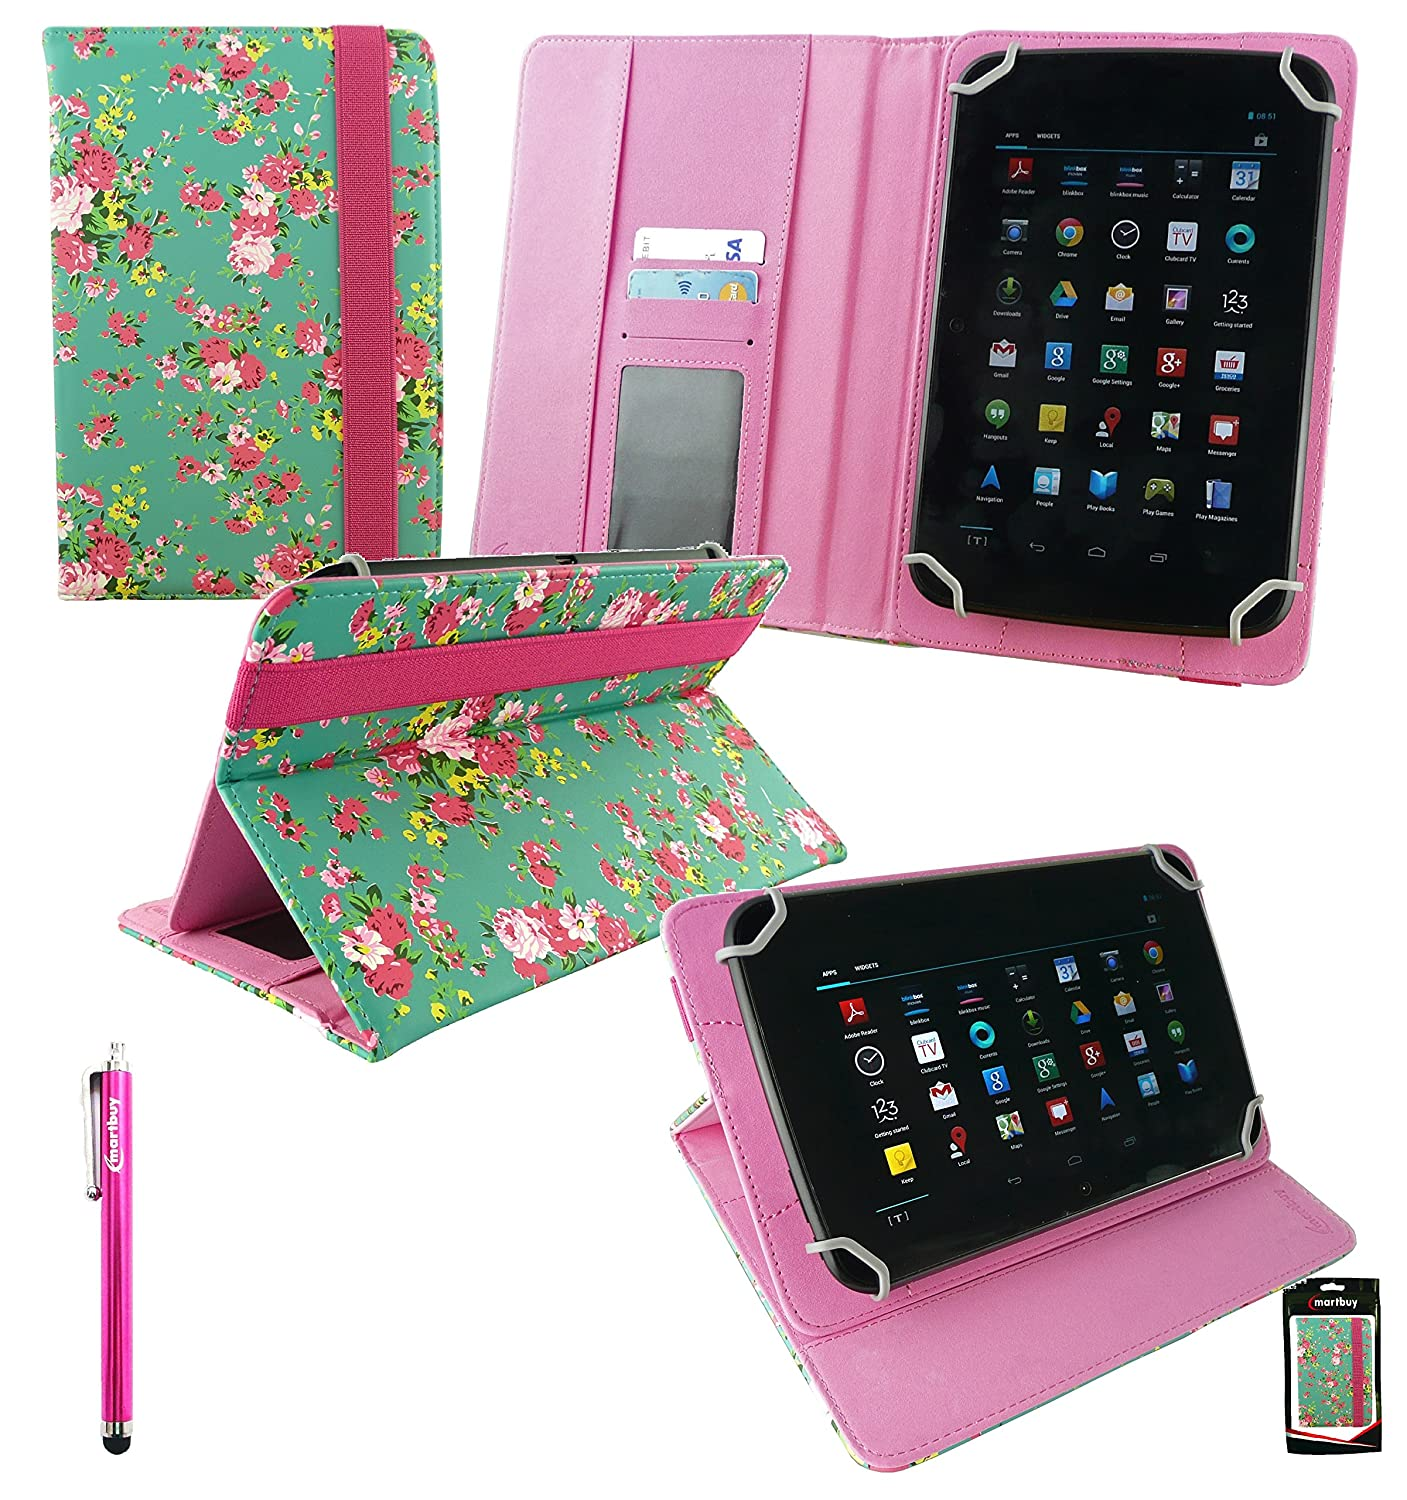 Emartbuy® Bq Edison 3 Mini 8 Inch Tablet Universal Range Verde Rose Garden PU Leather Ángulo Múltiples Executive Folio Funda Carcasa Wallet Case Cover ...